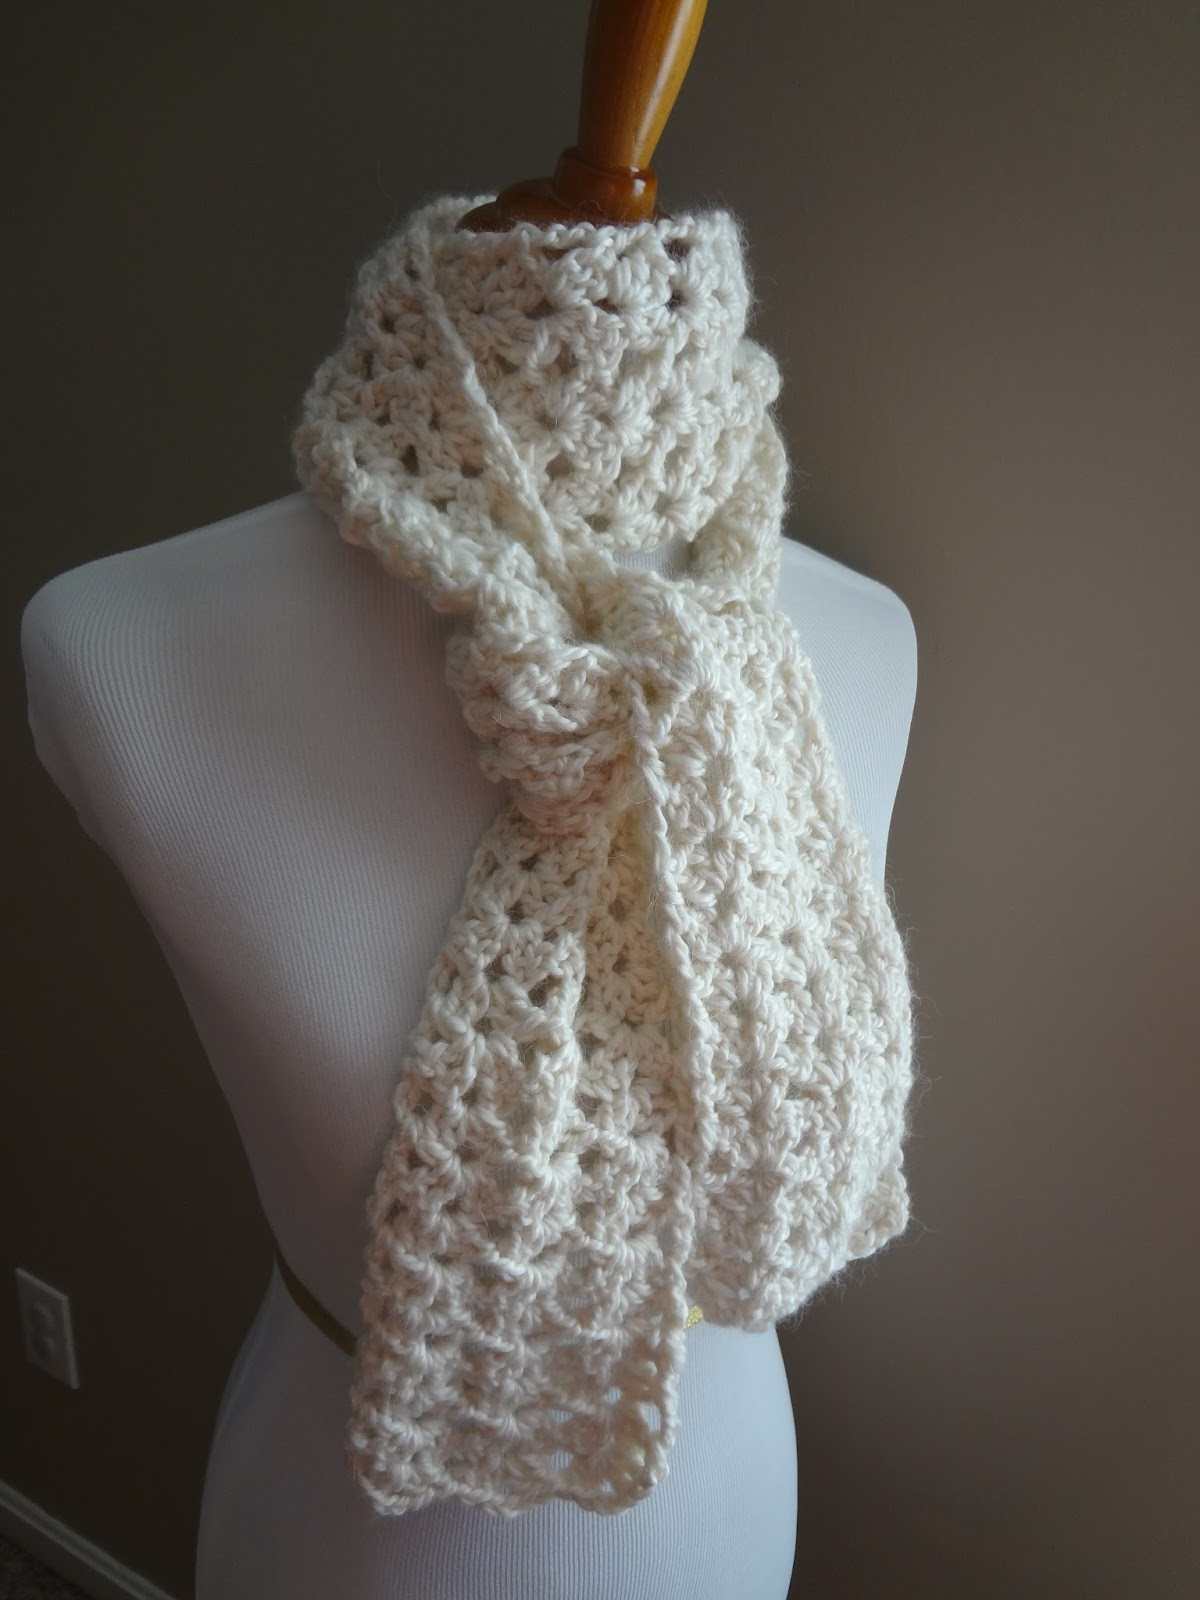 Scarf Crochet Luxury Fiber Flux Free Crochet Pattern Vanilla Bean Scarf Of Innovative 47 Pictures Scarf Crochet